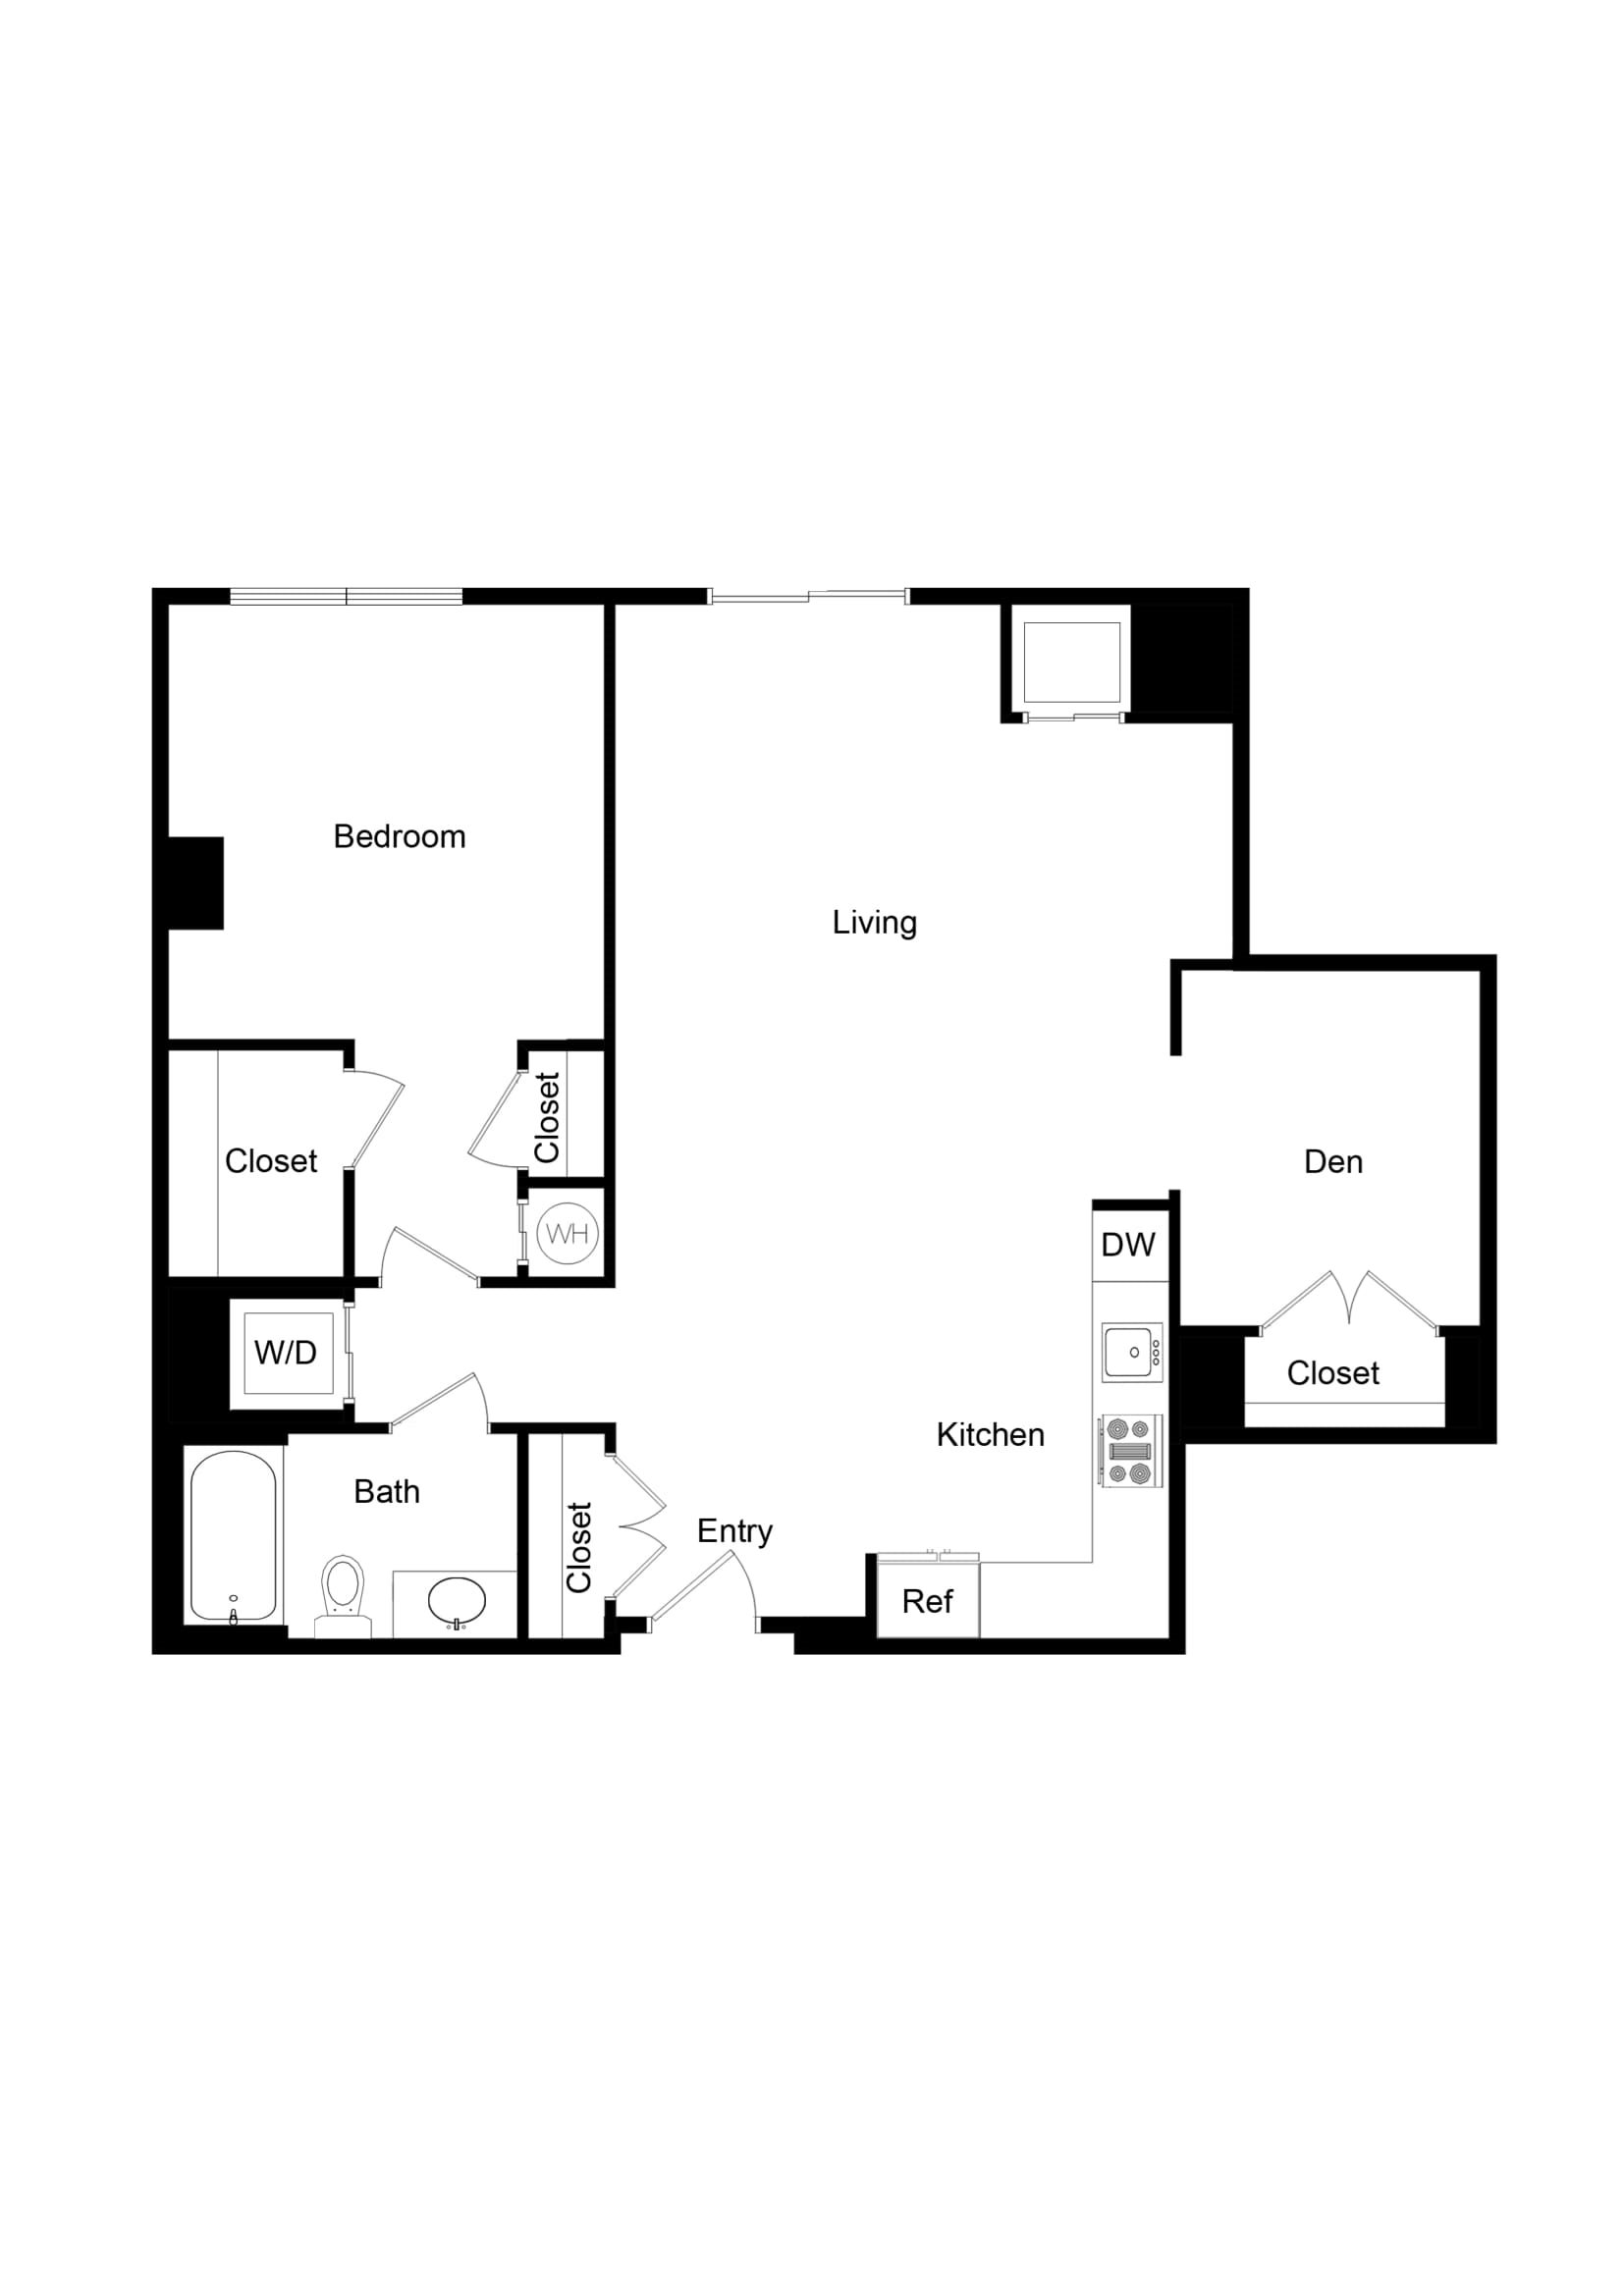 1x1 Den AD04 Floor Plan 35